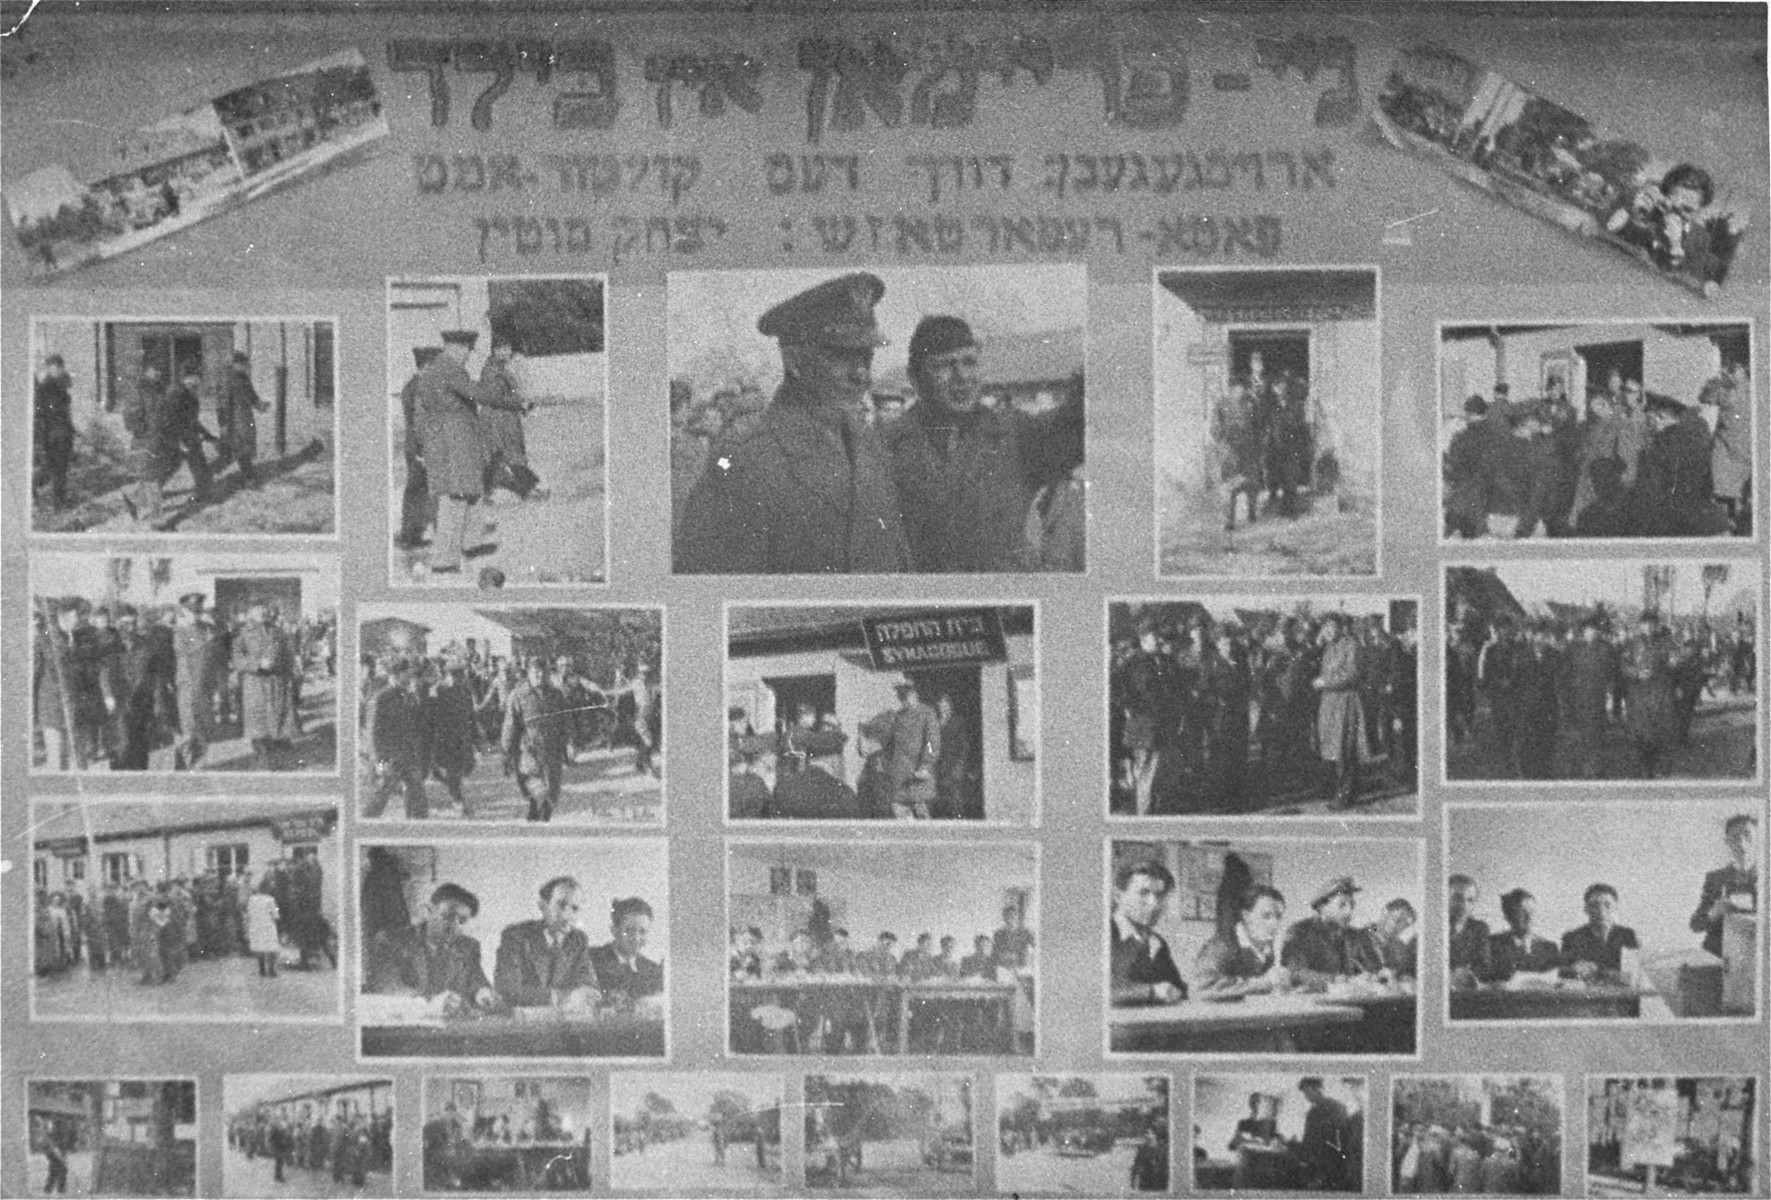 Montage of photographs depicting life in the Neu Freimann DP camp sponsored by the Neu Freimann cultural bureau and arranged by Jitzhak Sutin.